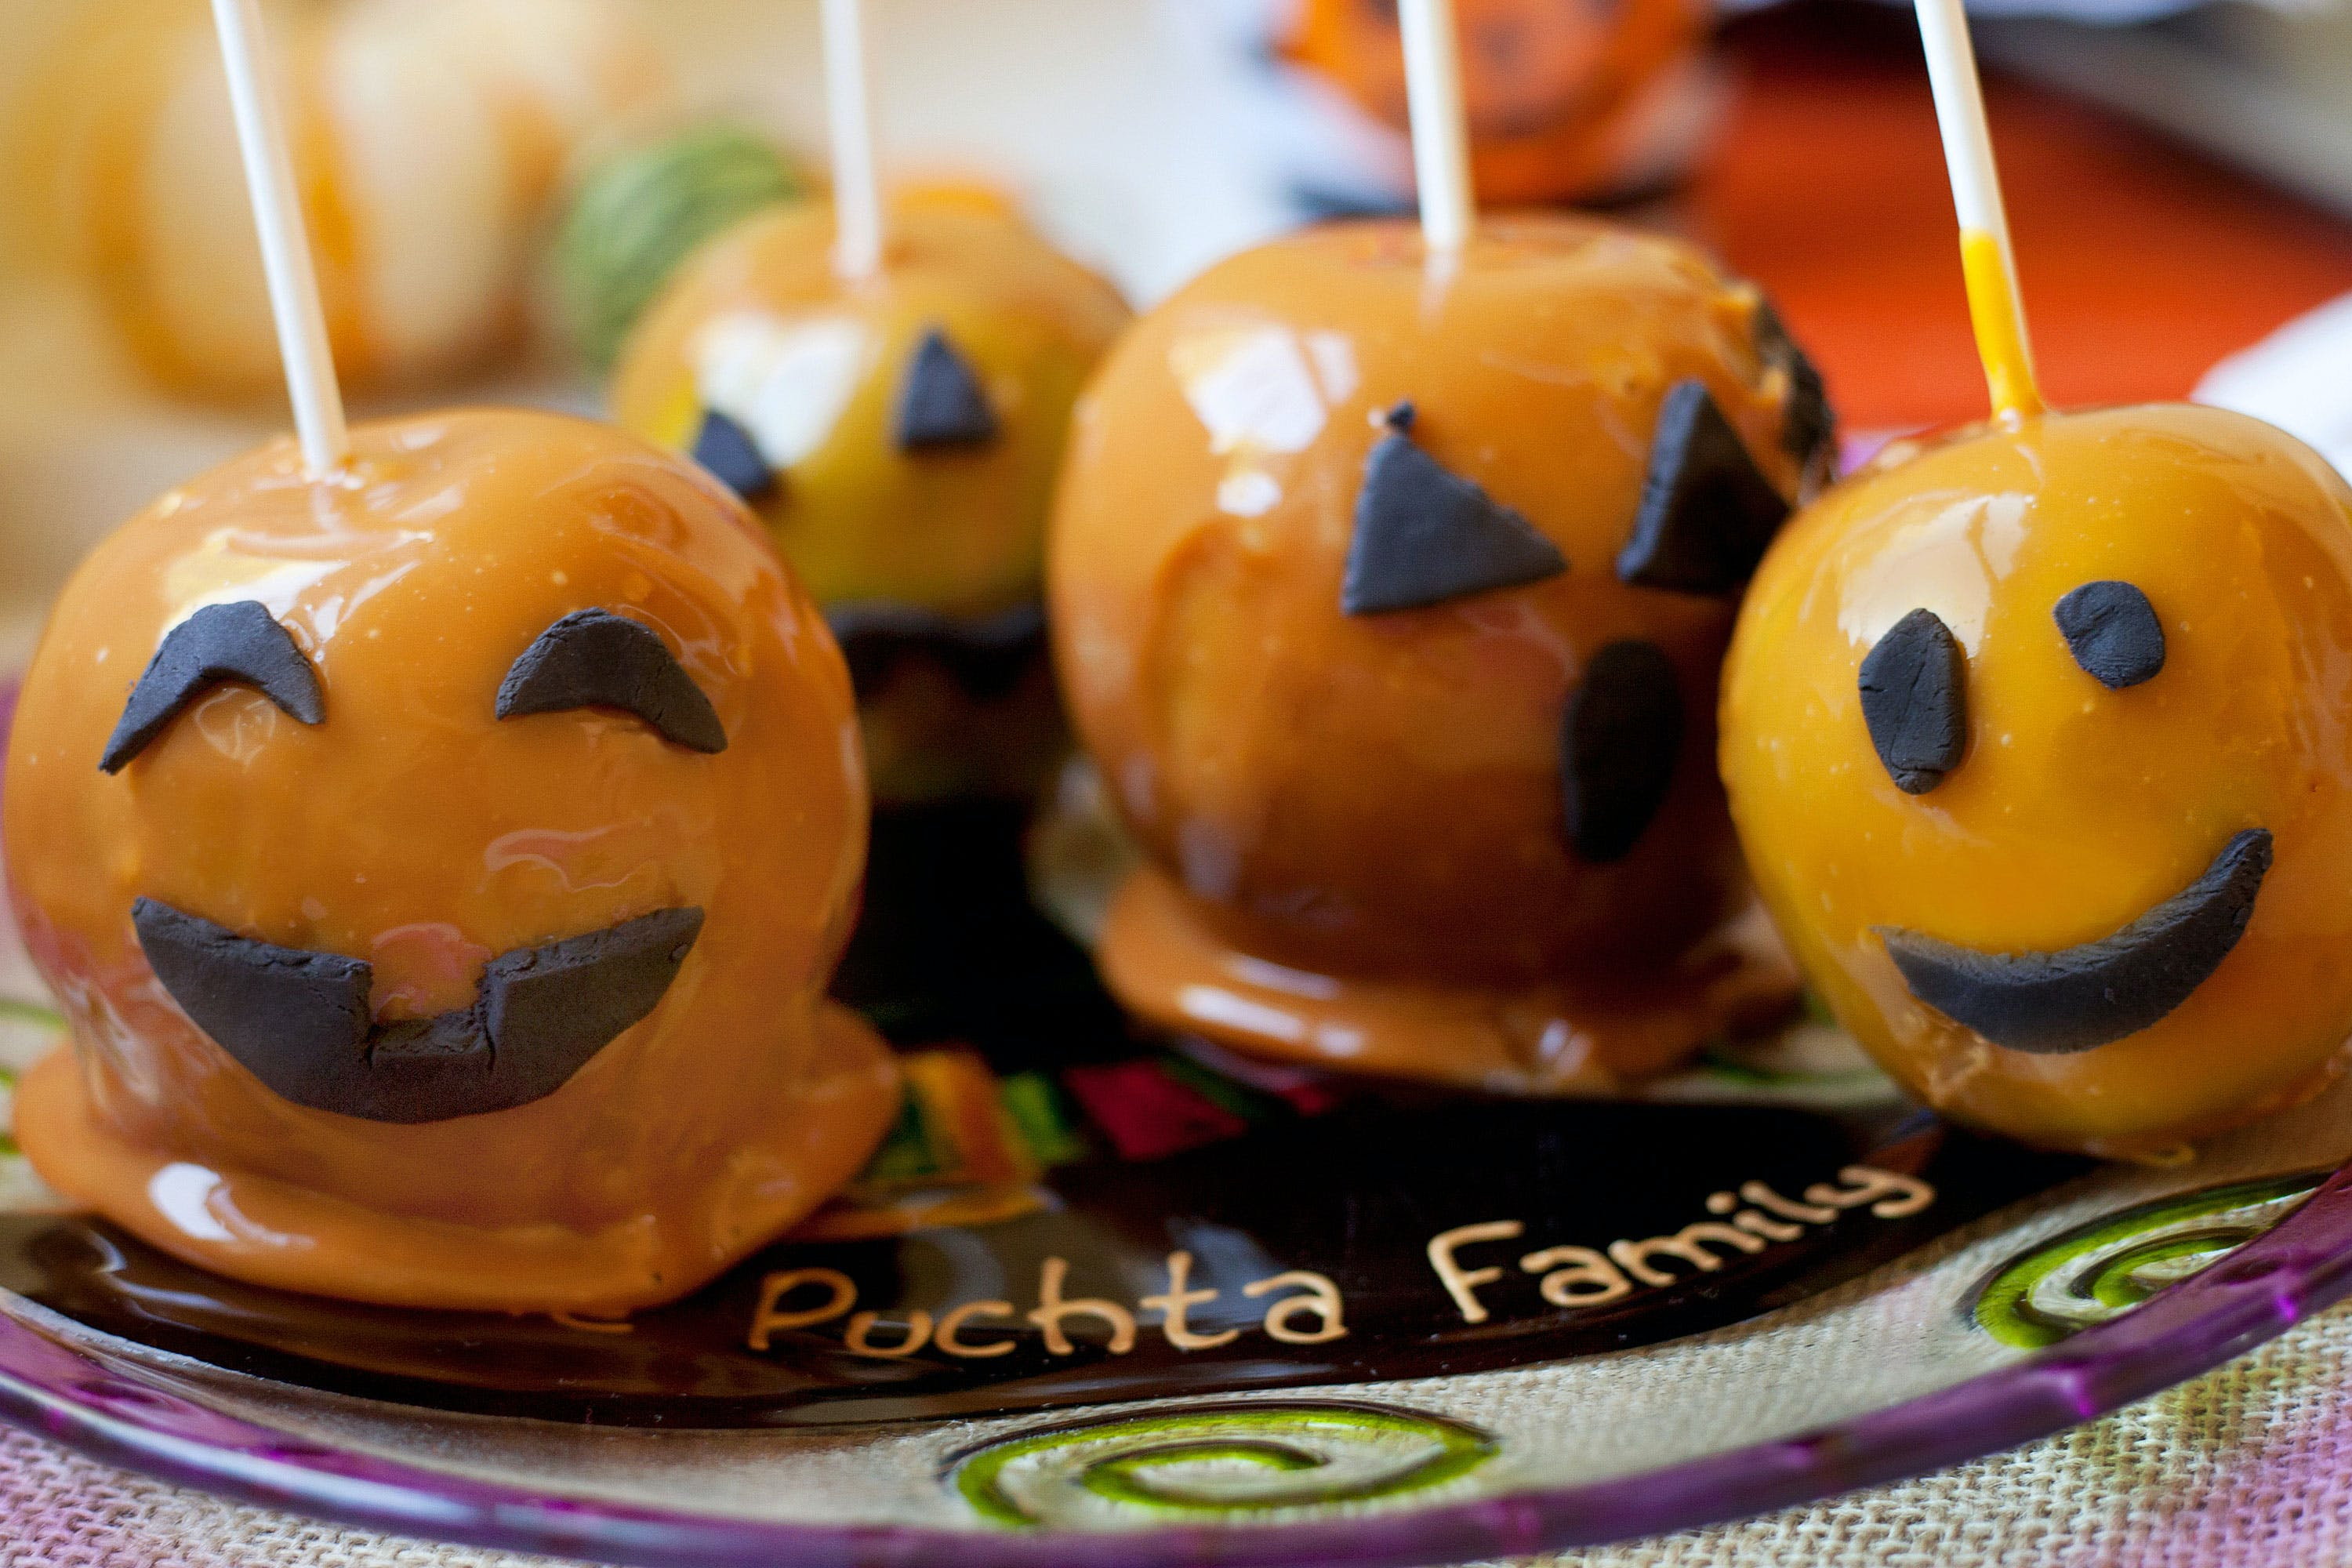 Caramel apples are among the best halloween edibles. Here, apples decorated like jack-o-lanterns are shown